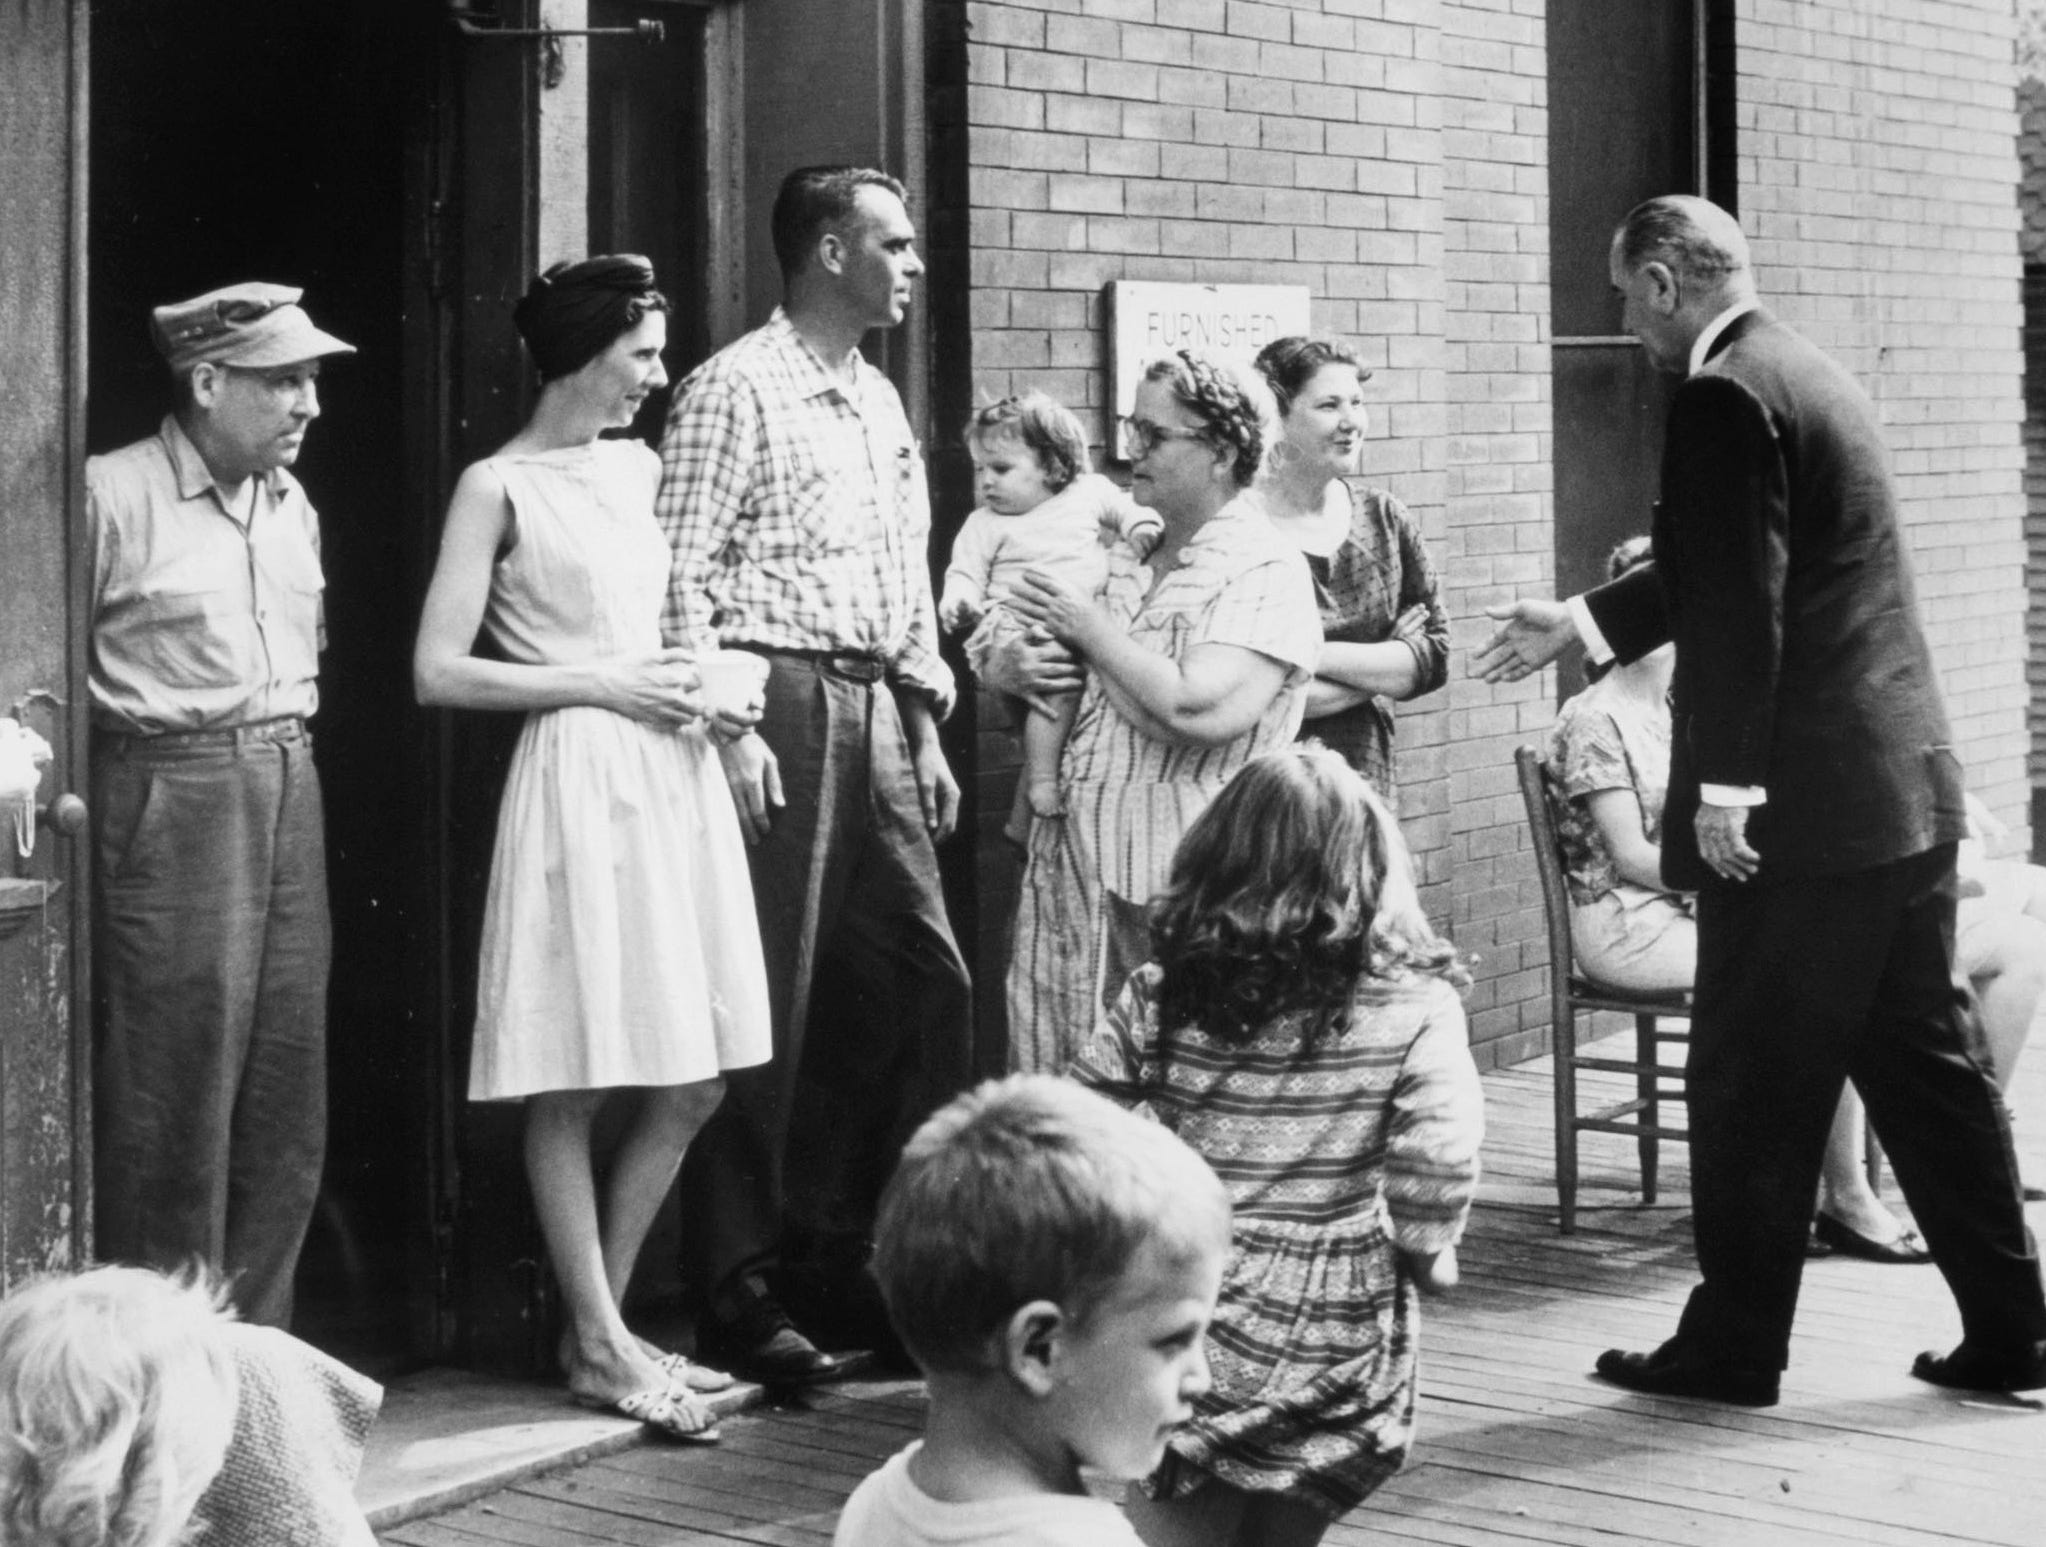 In a May 8, 1964 photograph, President Lyndon B. Johnson meets residents at an apartment house on Riverside Drive. Those pictured include Grover Helmboldt, left, Zelma Lawson with her granddaughter, Susan Anne Lawson, and Vivian Turner.